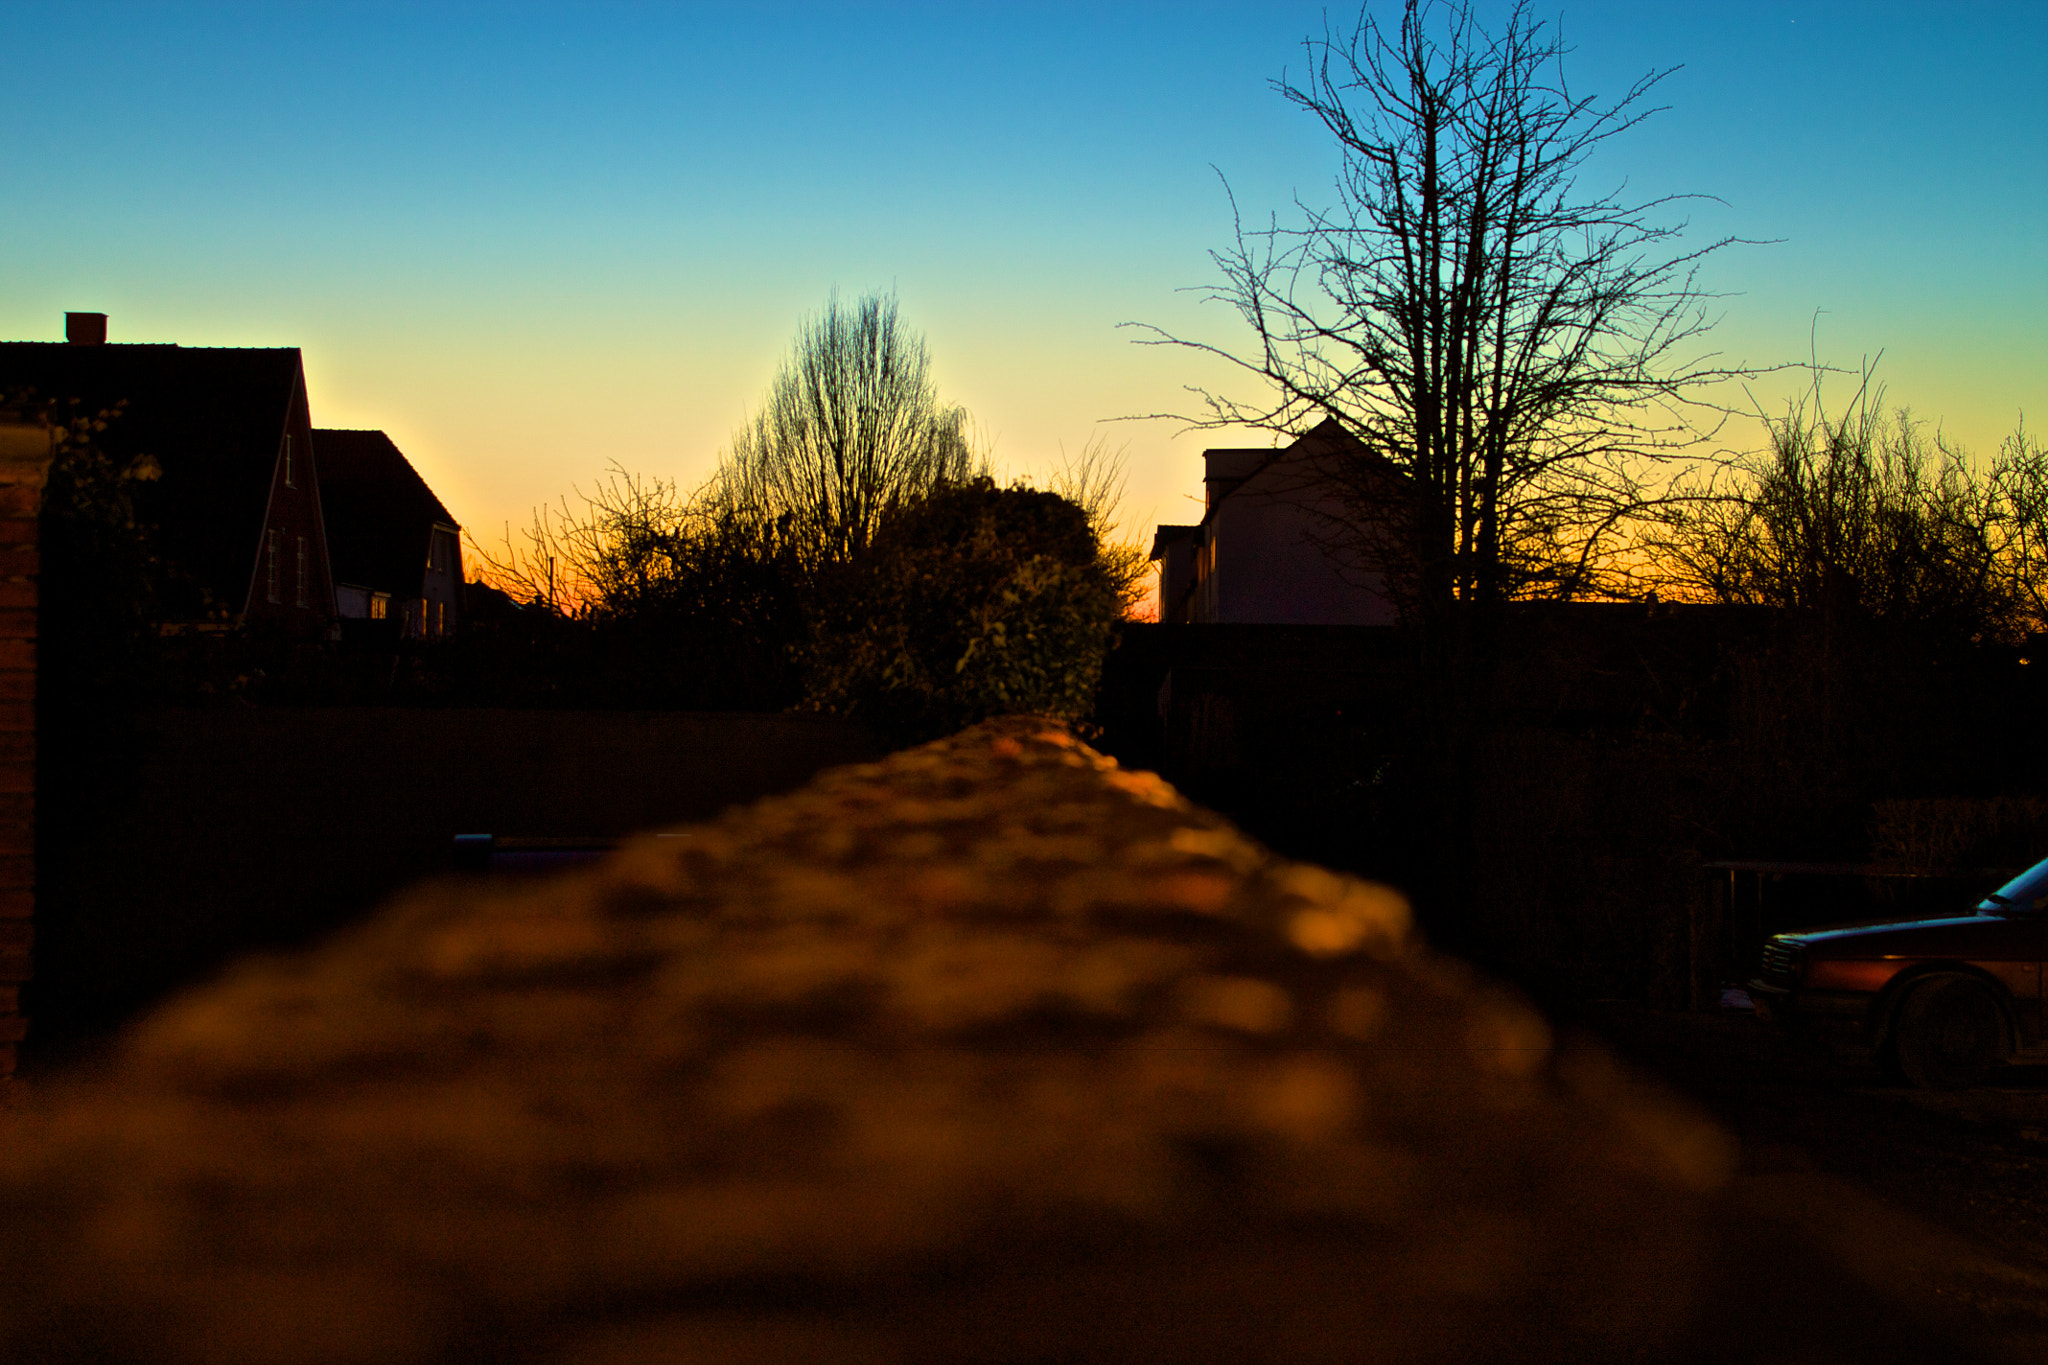 Photograph Let's say bye to another day by Rubén Jiménez on 500px